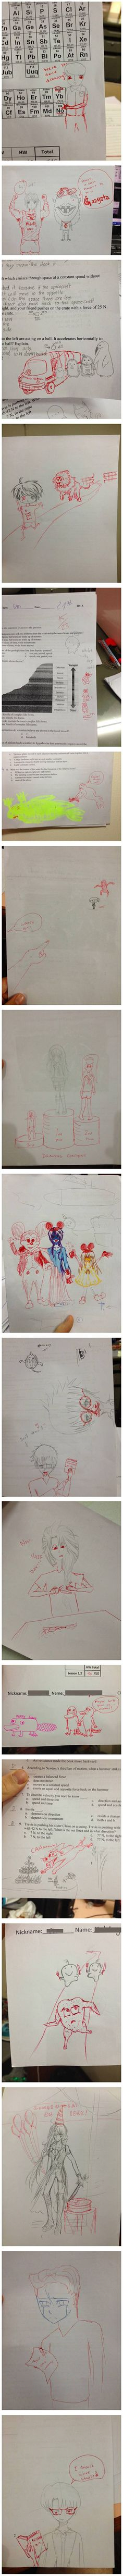 Teacher Adds His Own Doodles To The Doodles His Students Make On Their Papers.